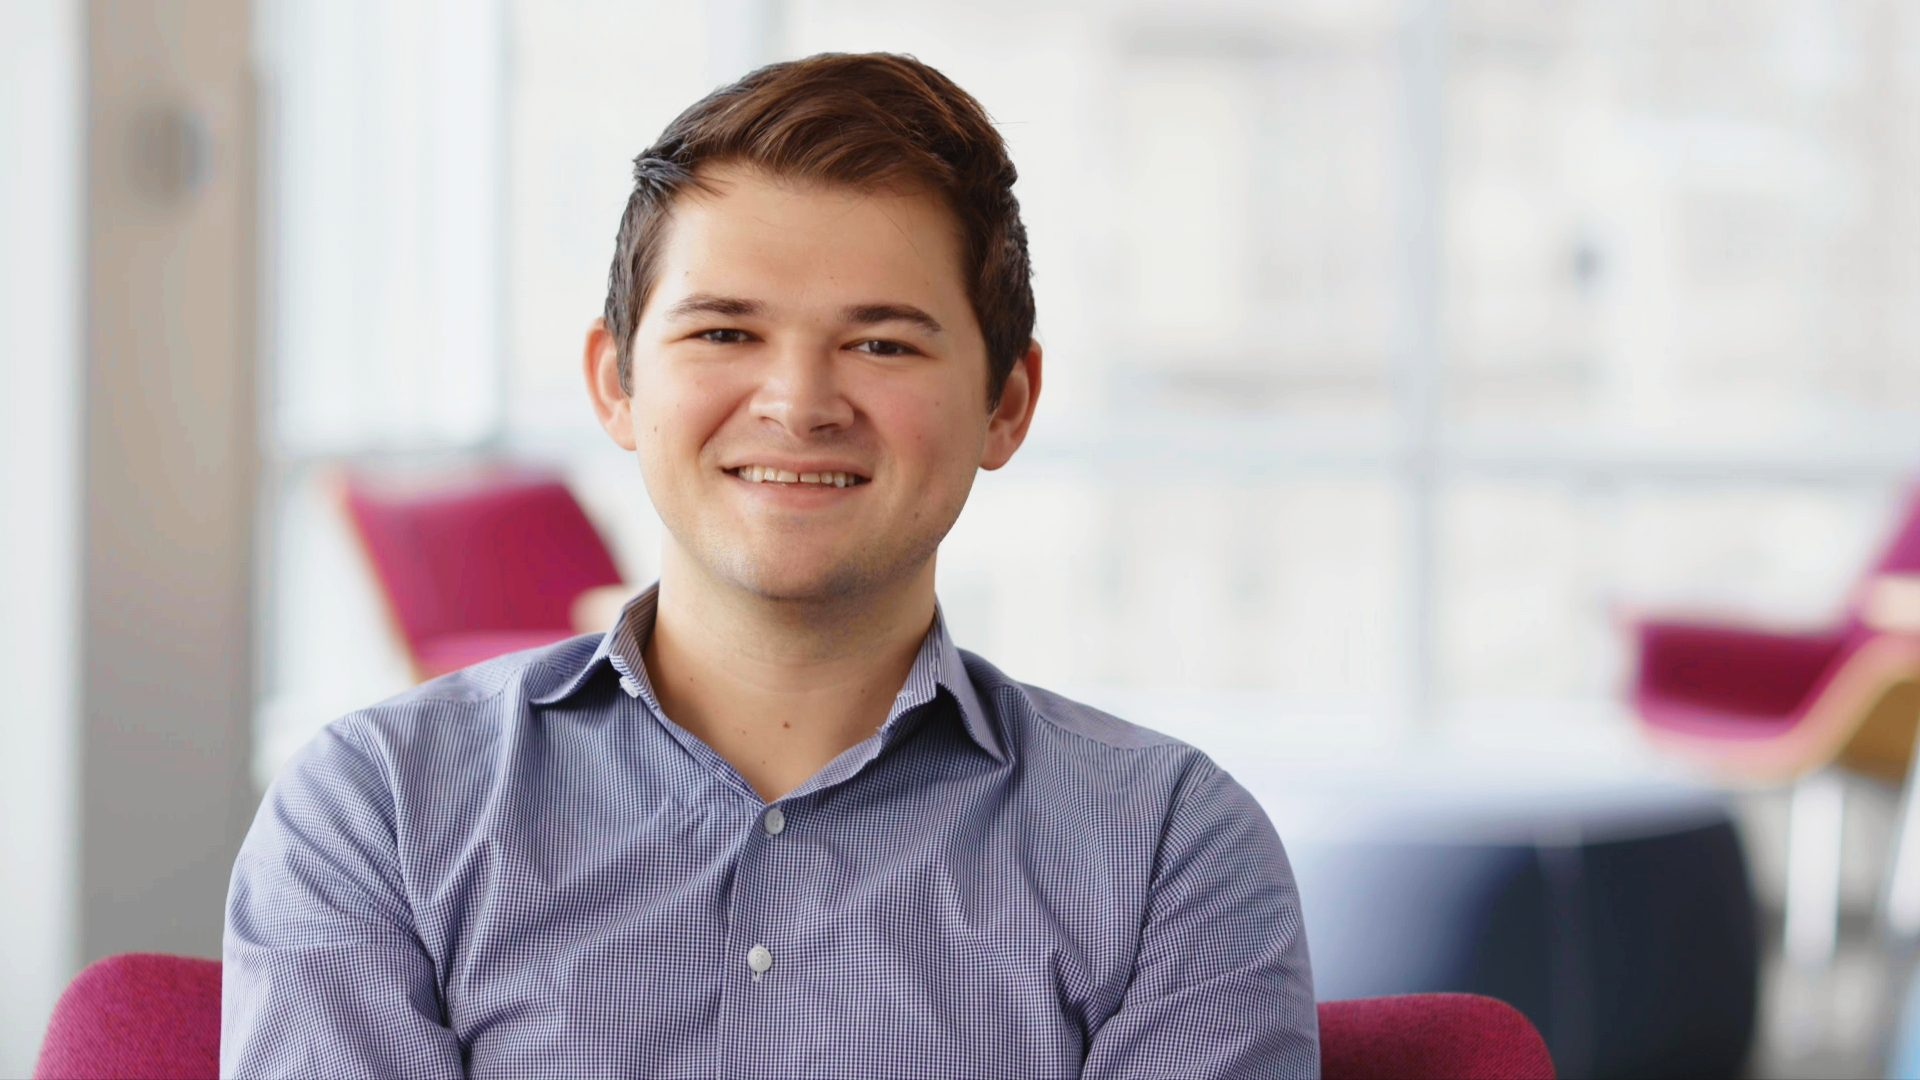 Andrei- Working at Liberty Mutual